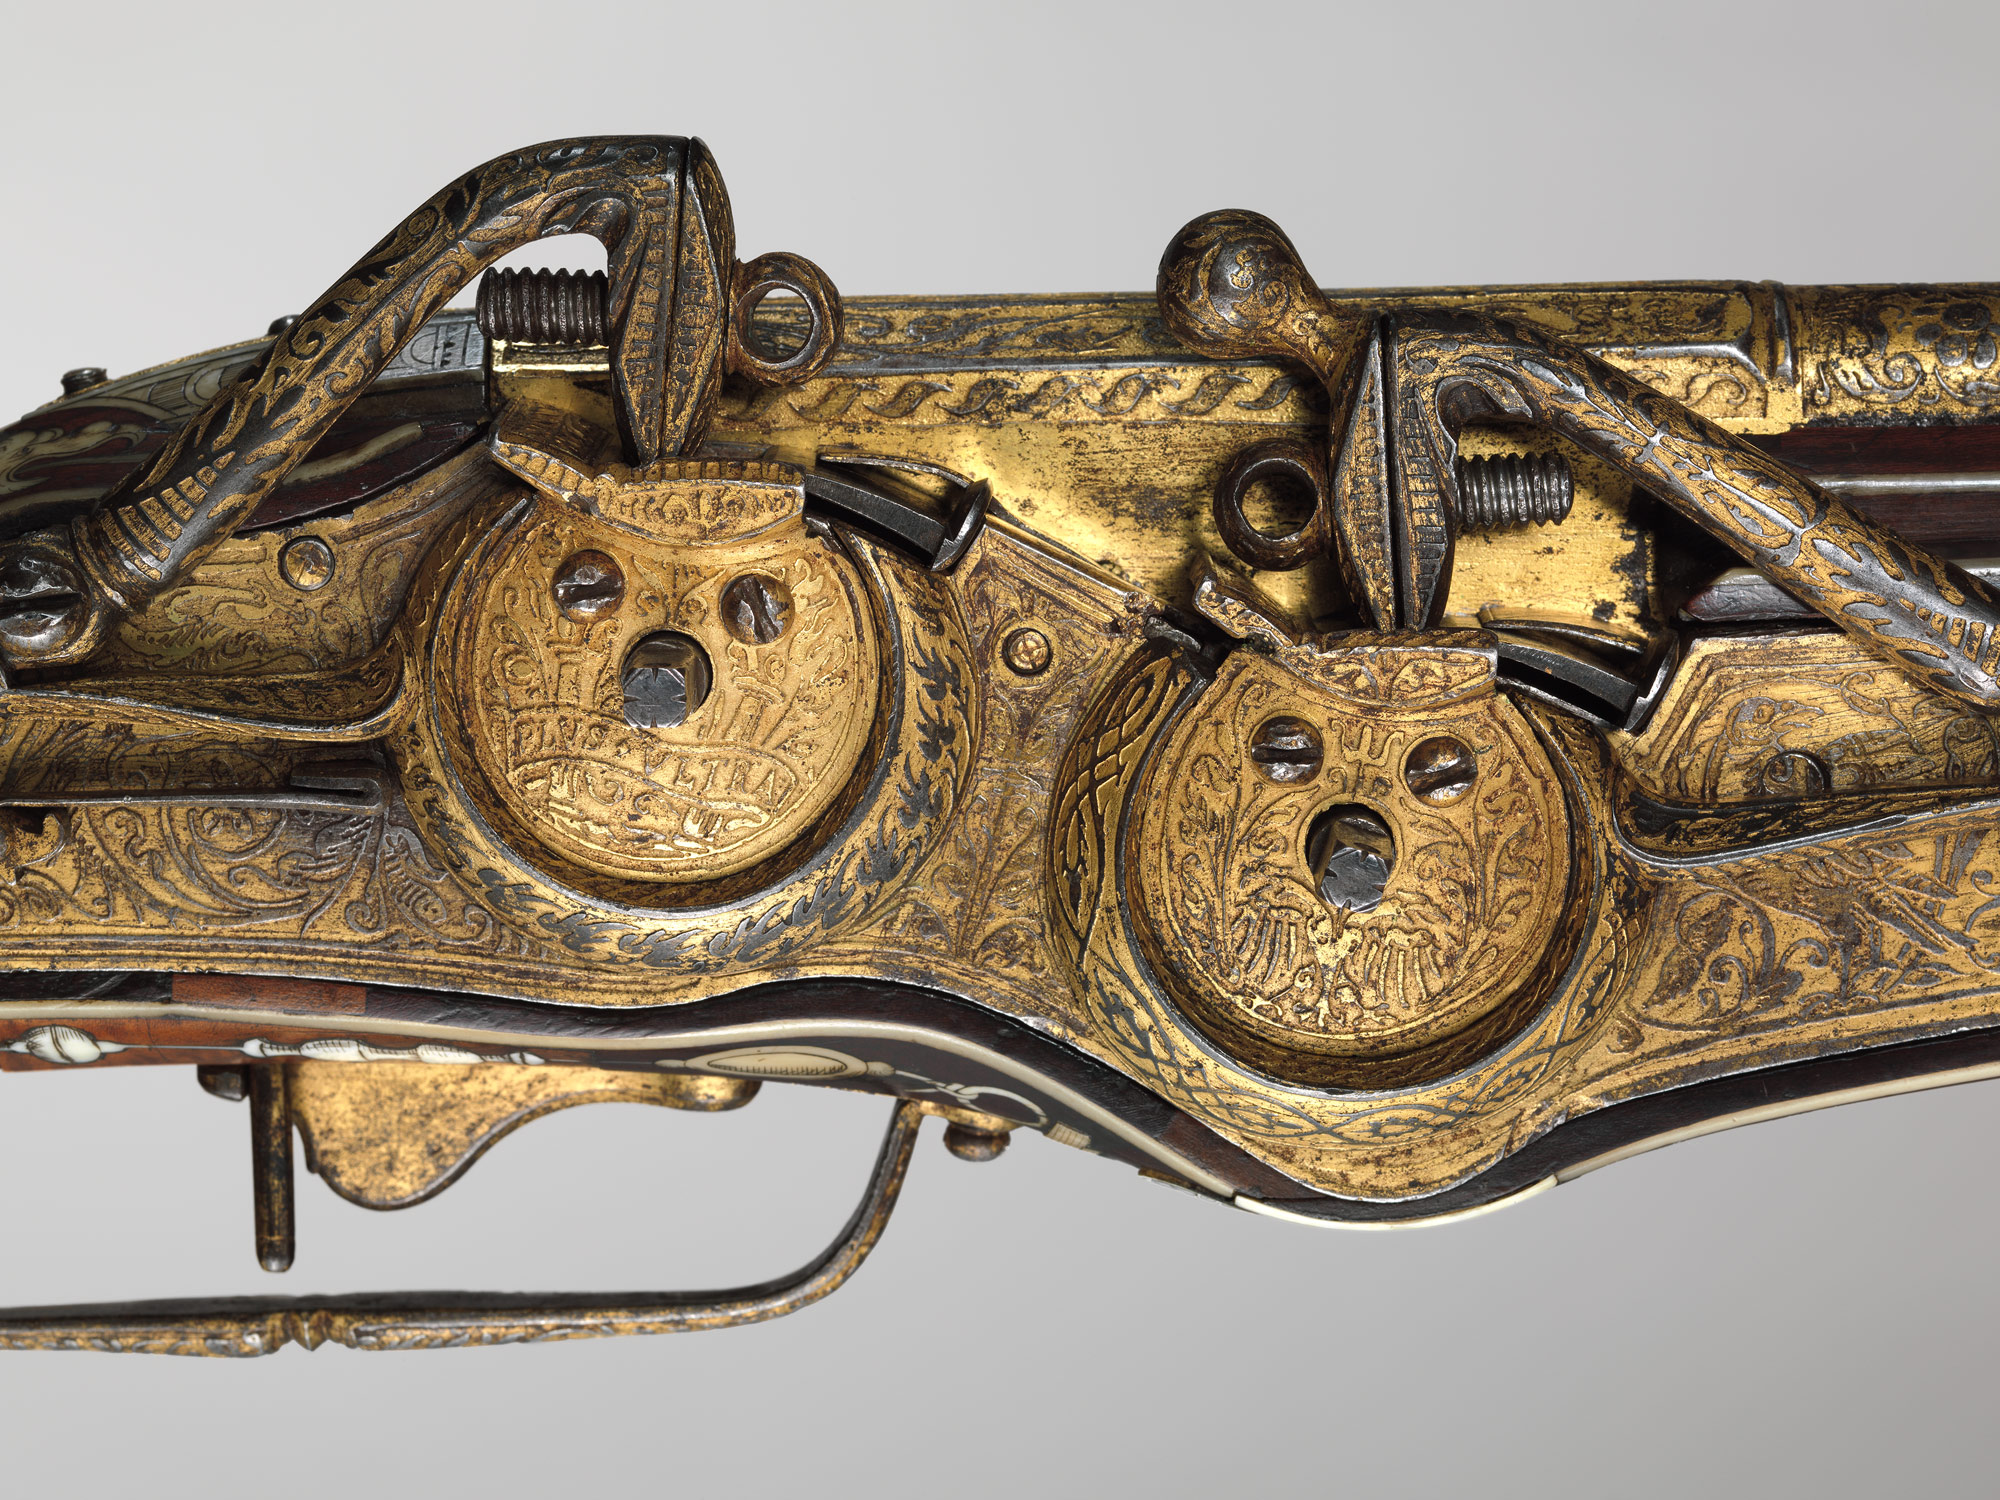 Double-Barreled Wheellock Pistol Made for Emperor Charles V (reigned 1519–56)